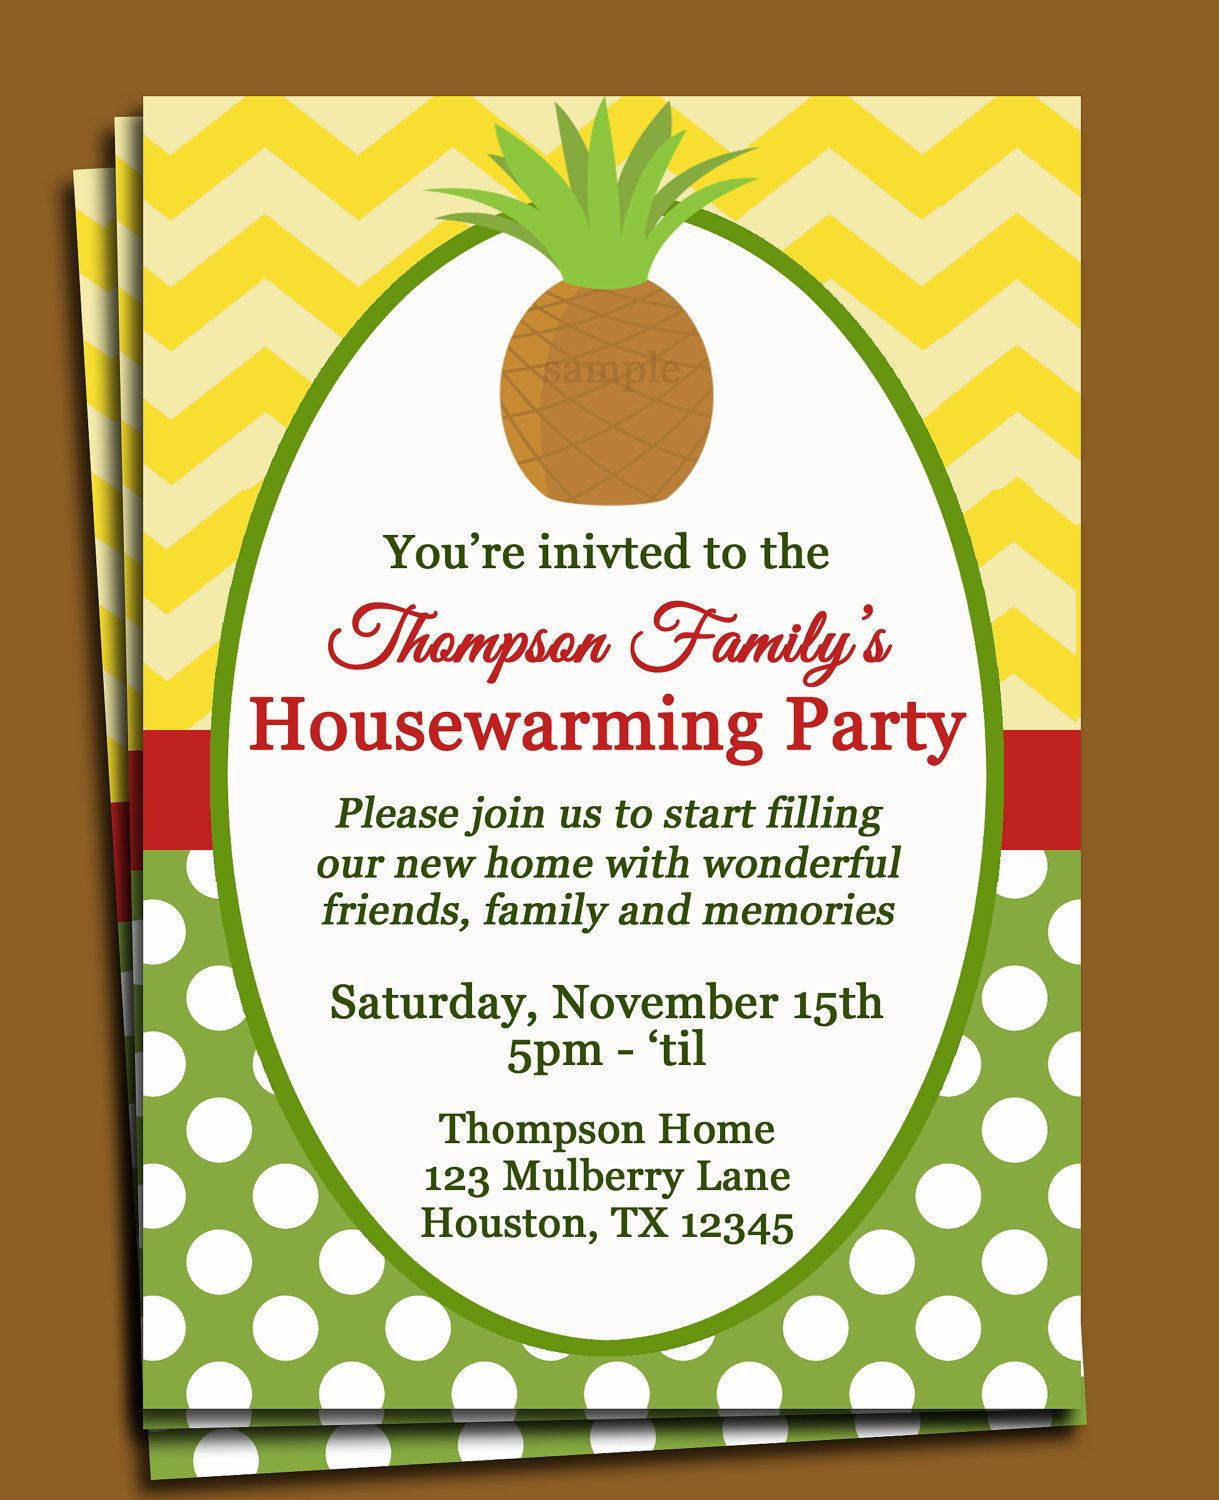 Housewarming invitation wording google search housewarming pinterest housewarming - Gifts for gruhapravesam ...